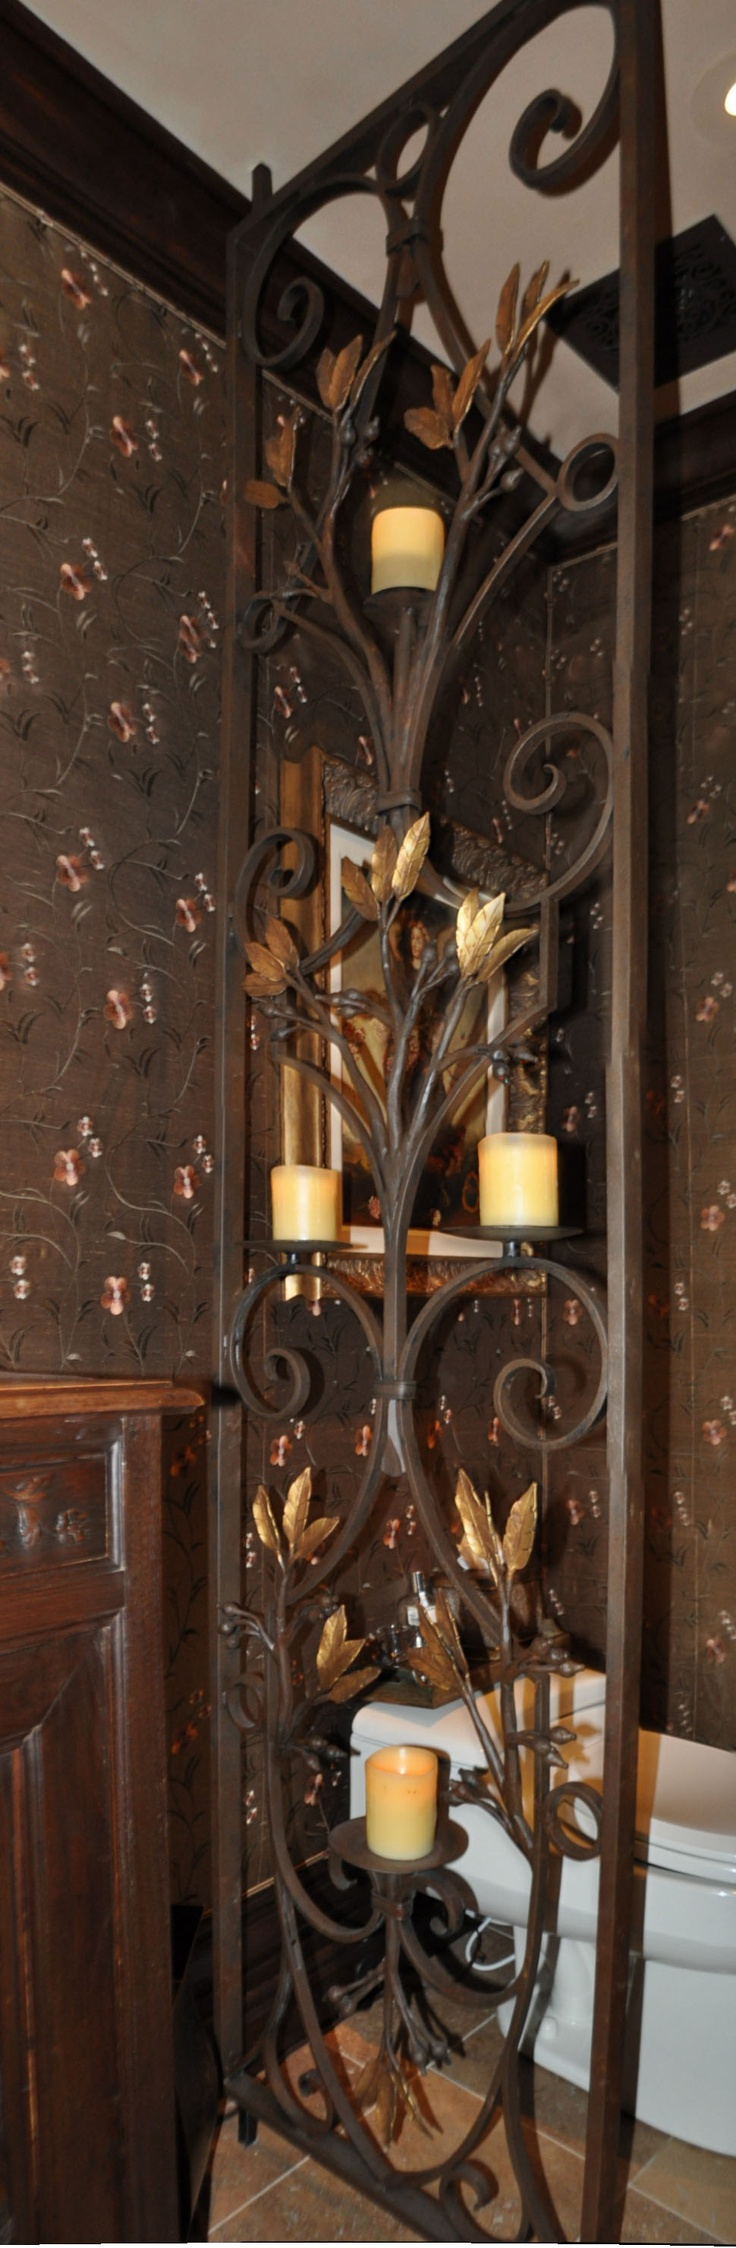 Hand forged powder bath room divider and light fixture